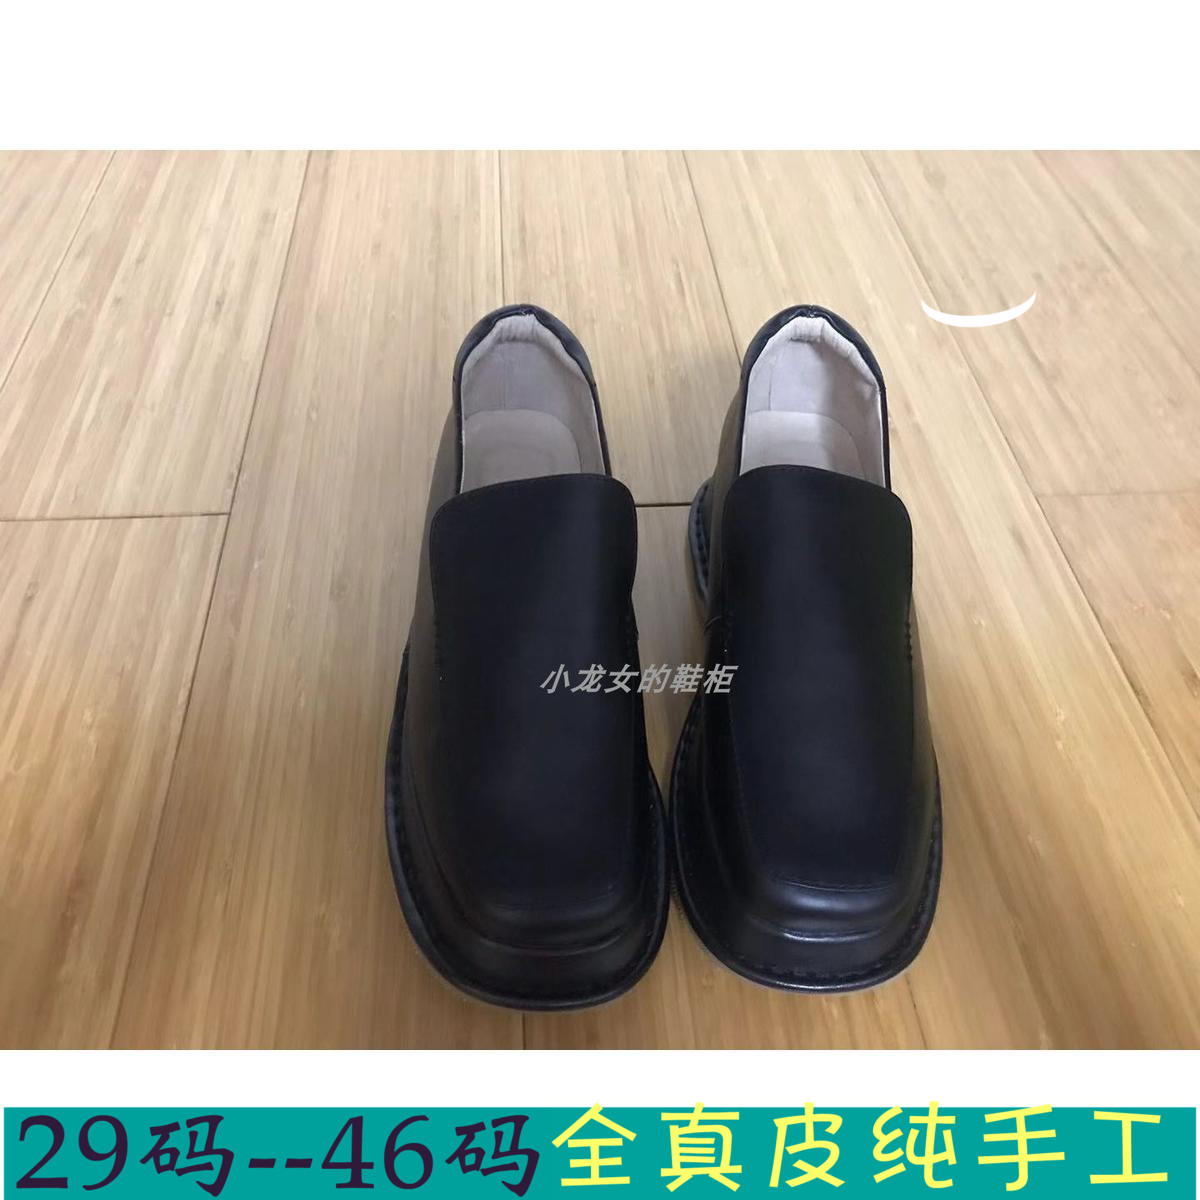 Neutral handsome gentleman old shoes Vintage sailboat shoes womens autumn and winter new Yshan thick bottom sponge cake Yushan shoes